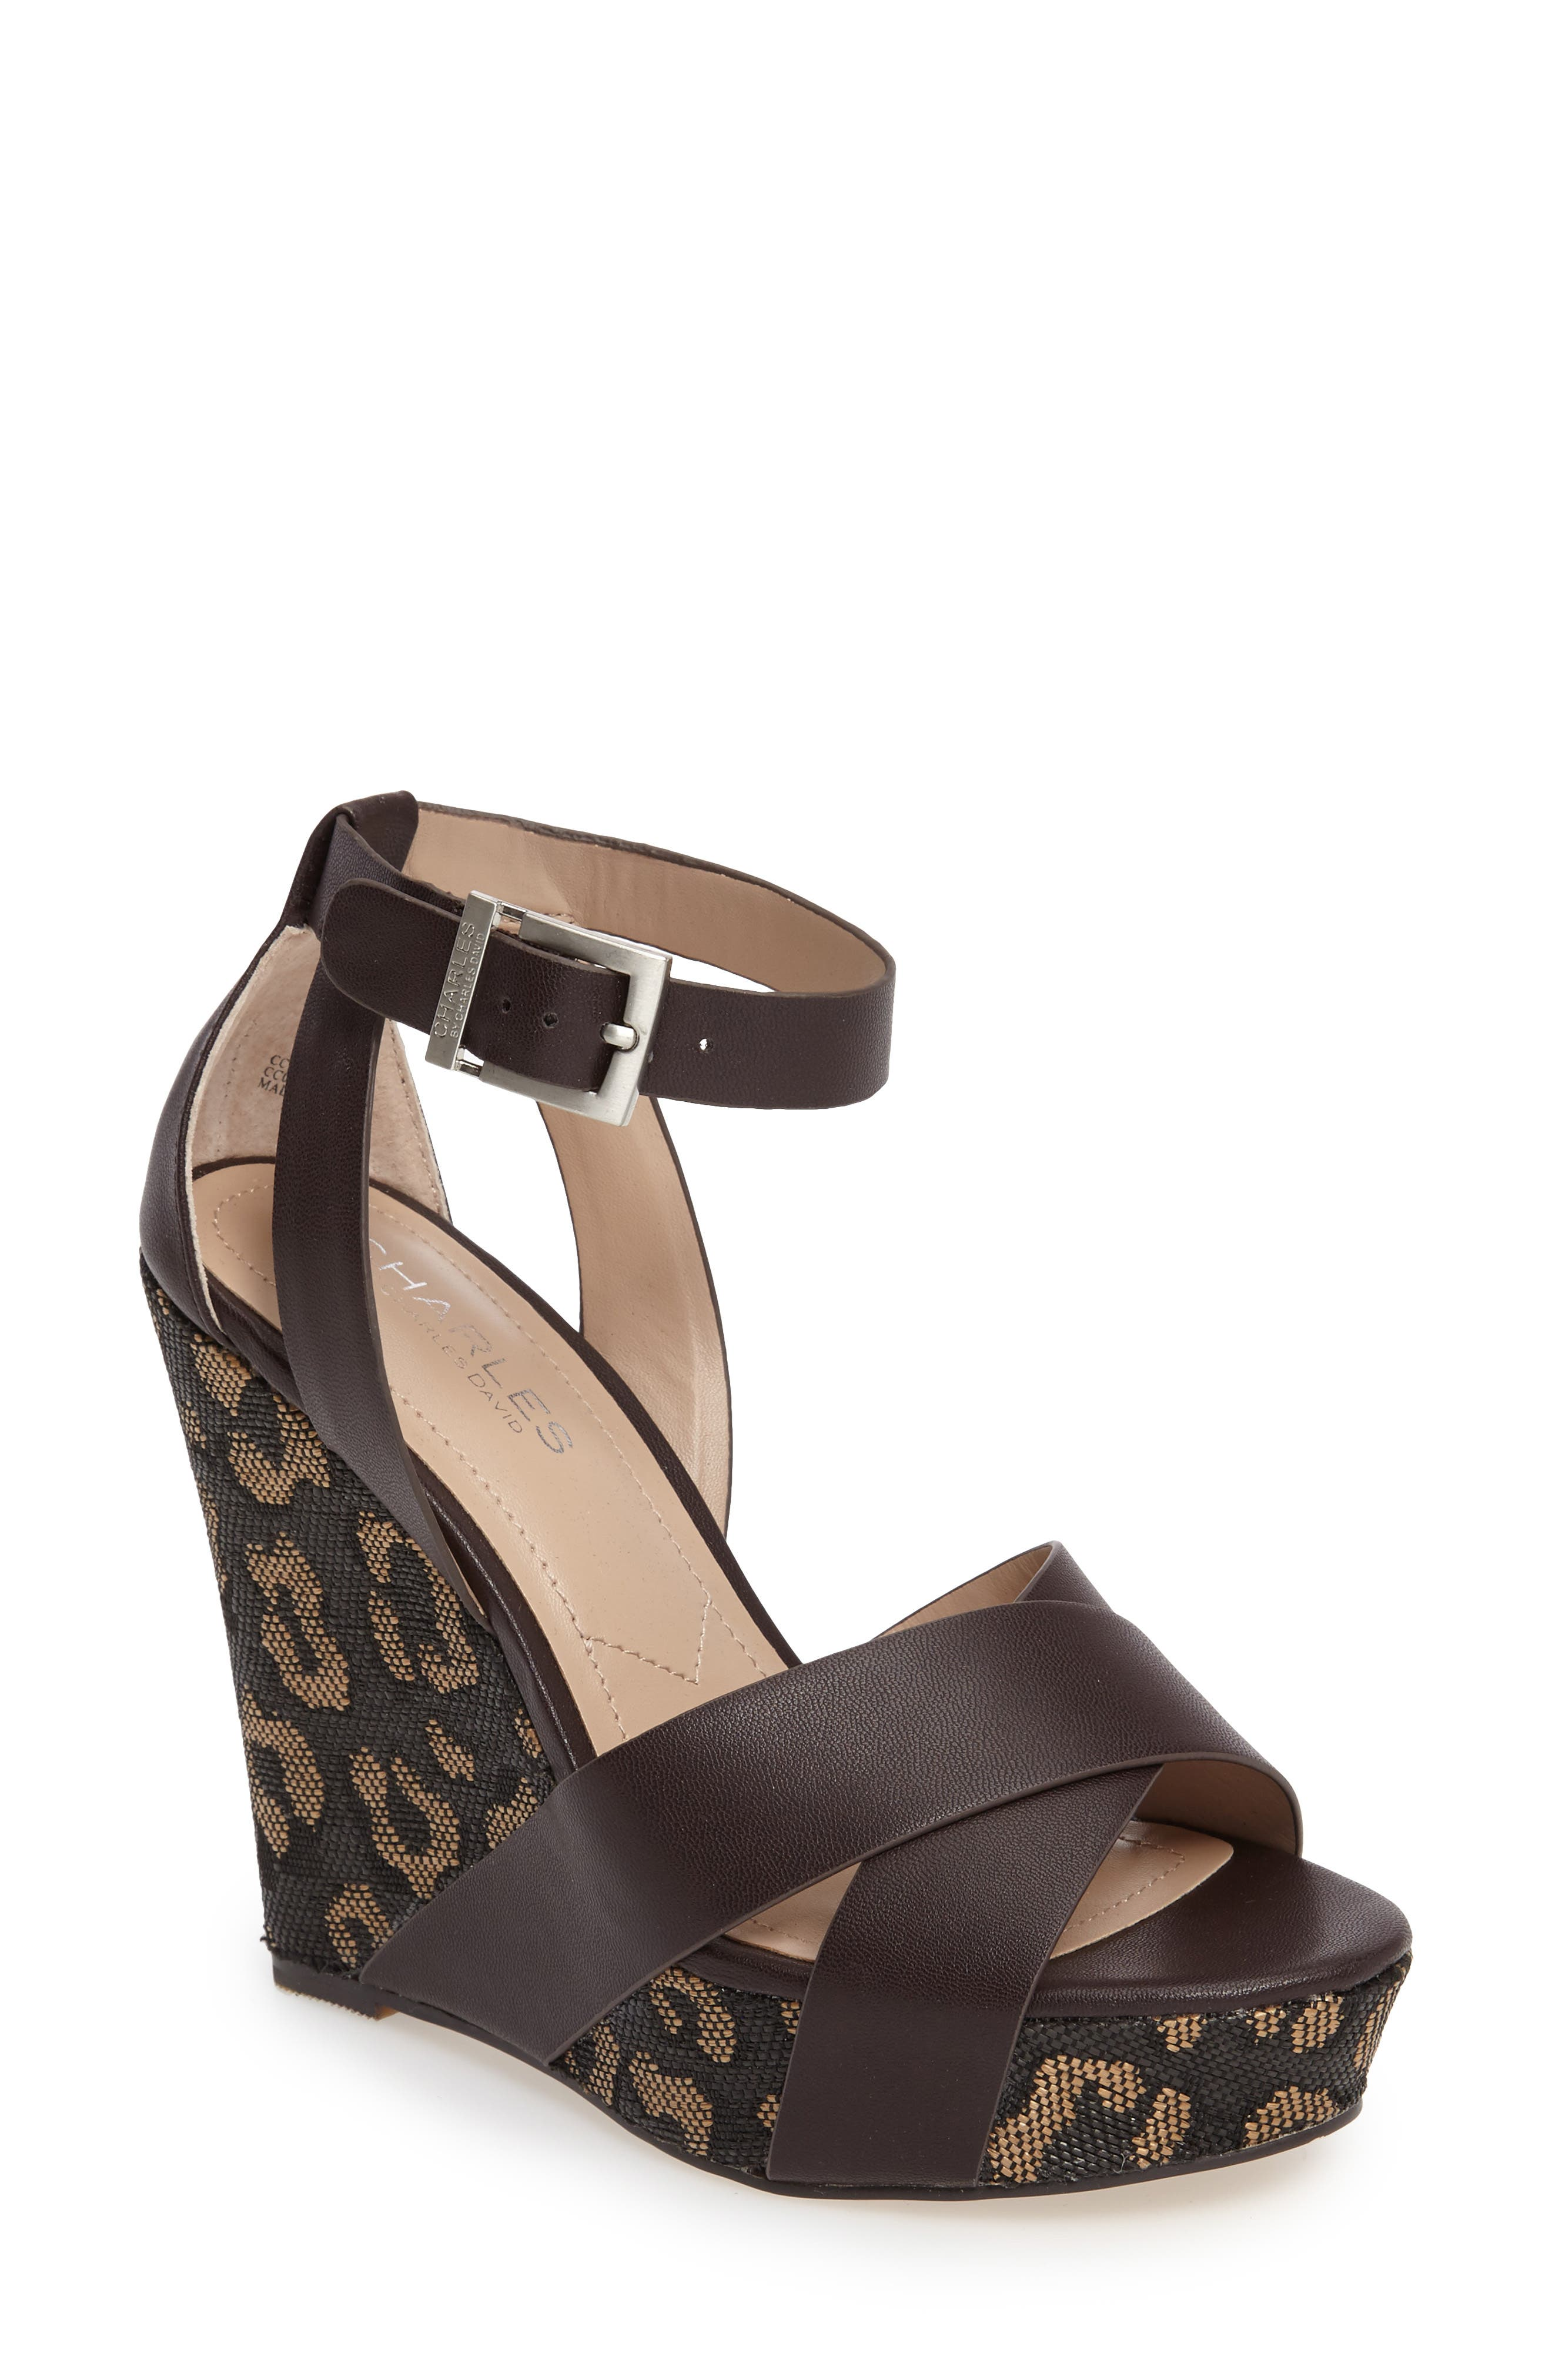 Amsterdam Platform Wedge Sandal,                             Main thumbnail 2, color,